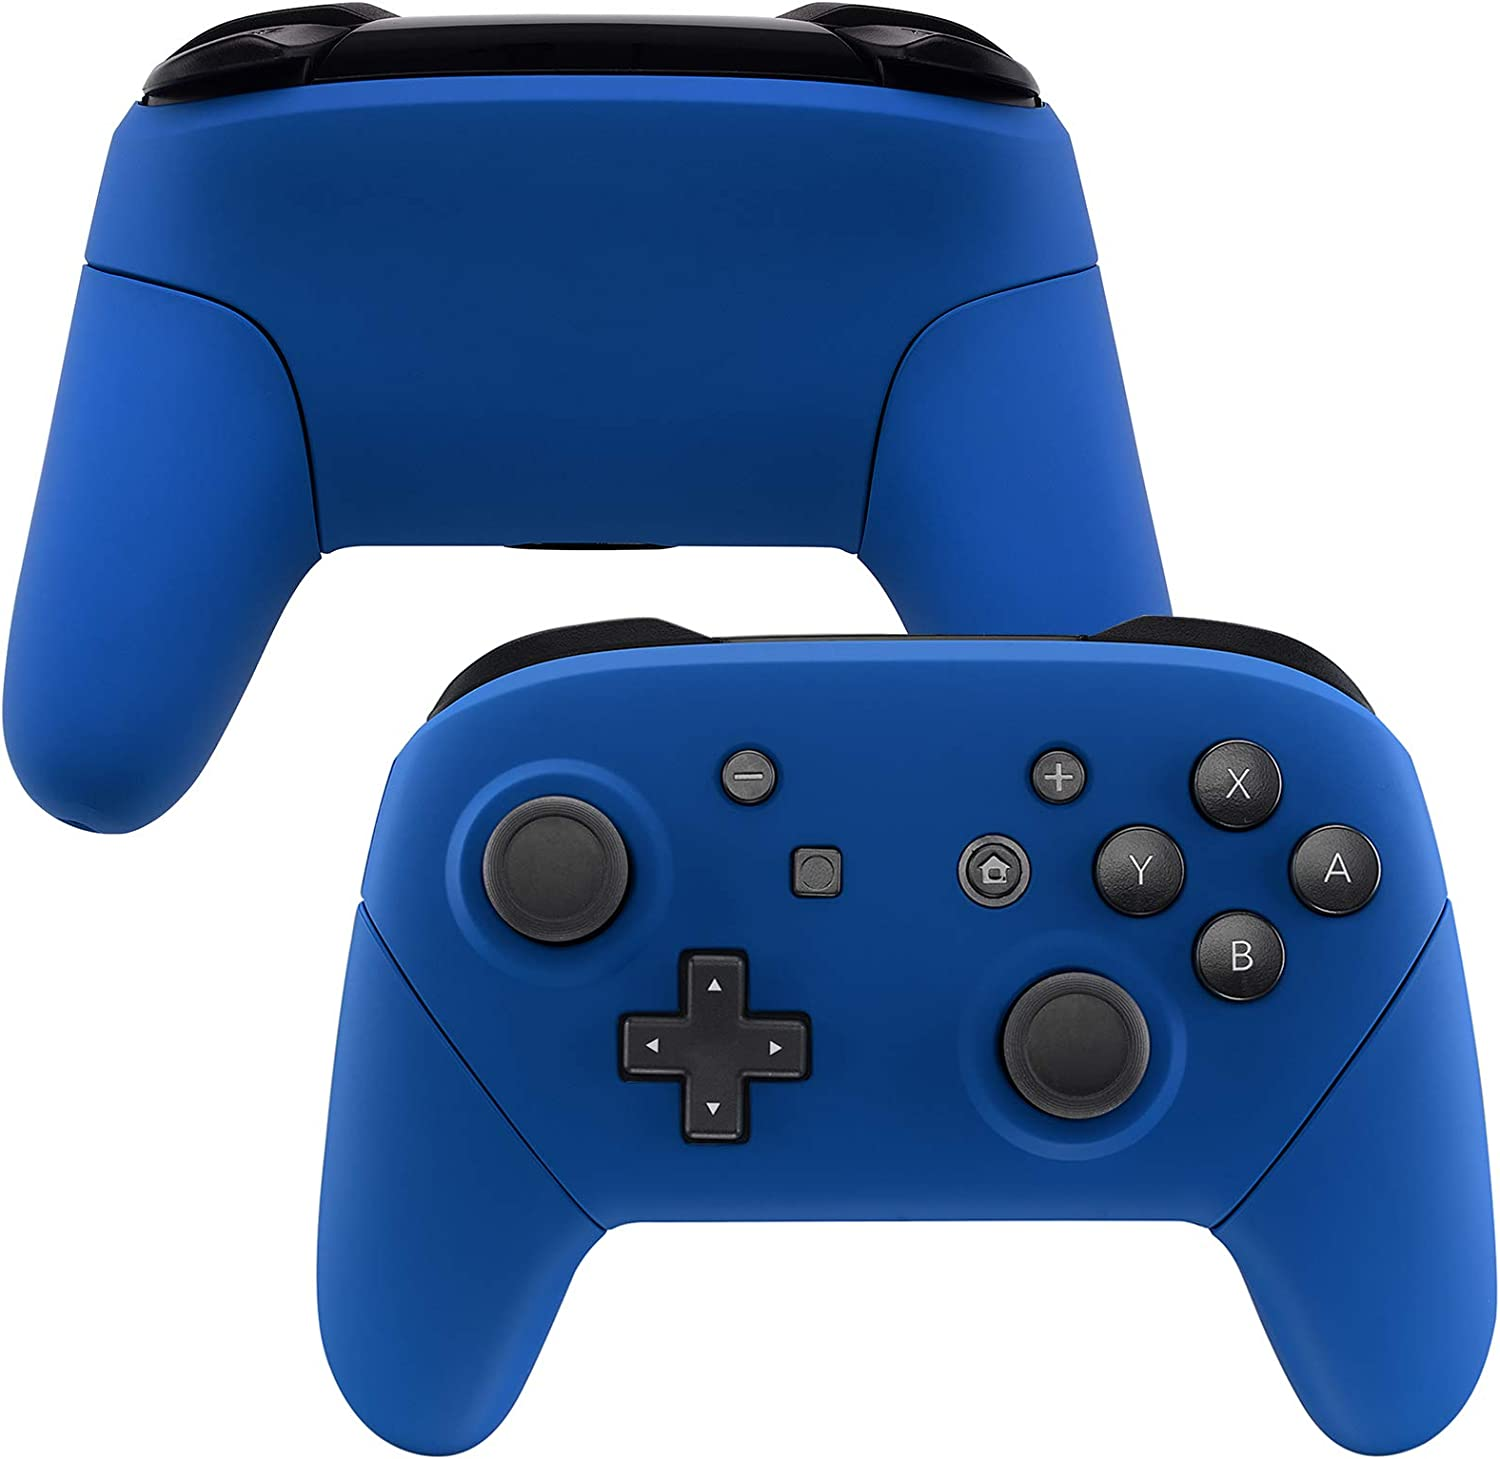 eXtremeRate Blue Faceplate Backplate Handles for Nintendo Switch Pro Controller, Soft Touch DIY Replacement Grip Housing Shell Cover for Nintendo Switch Pro - Controller NOT Included: Computers & Accessories